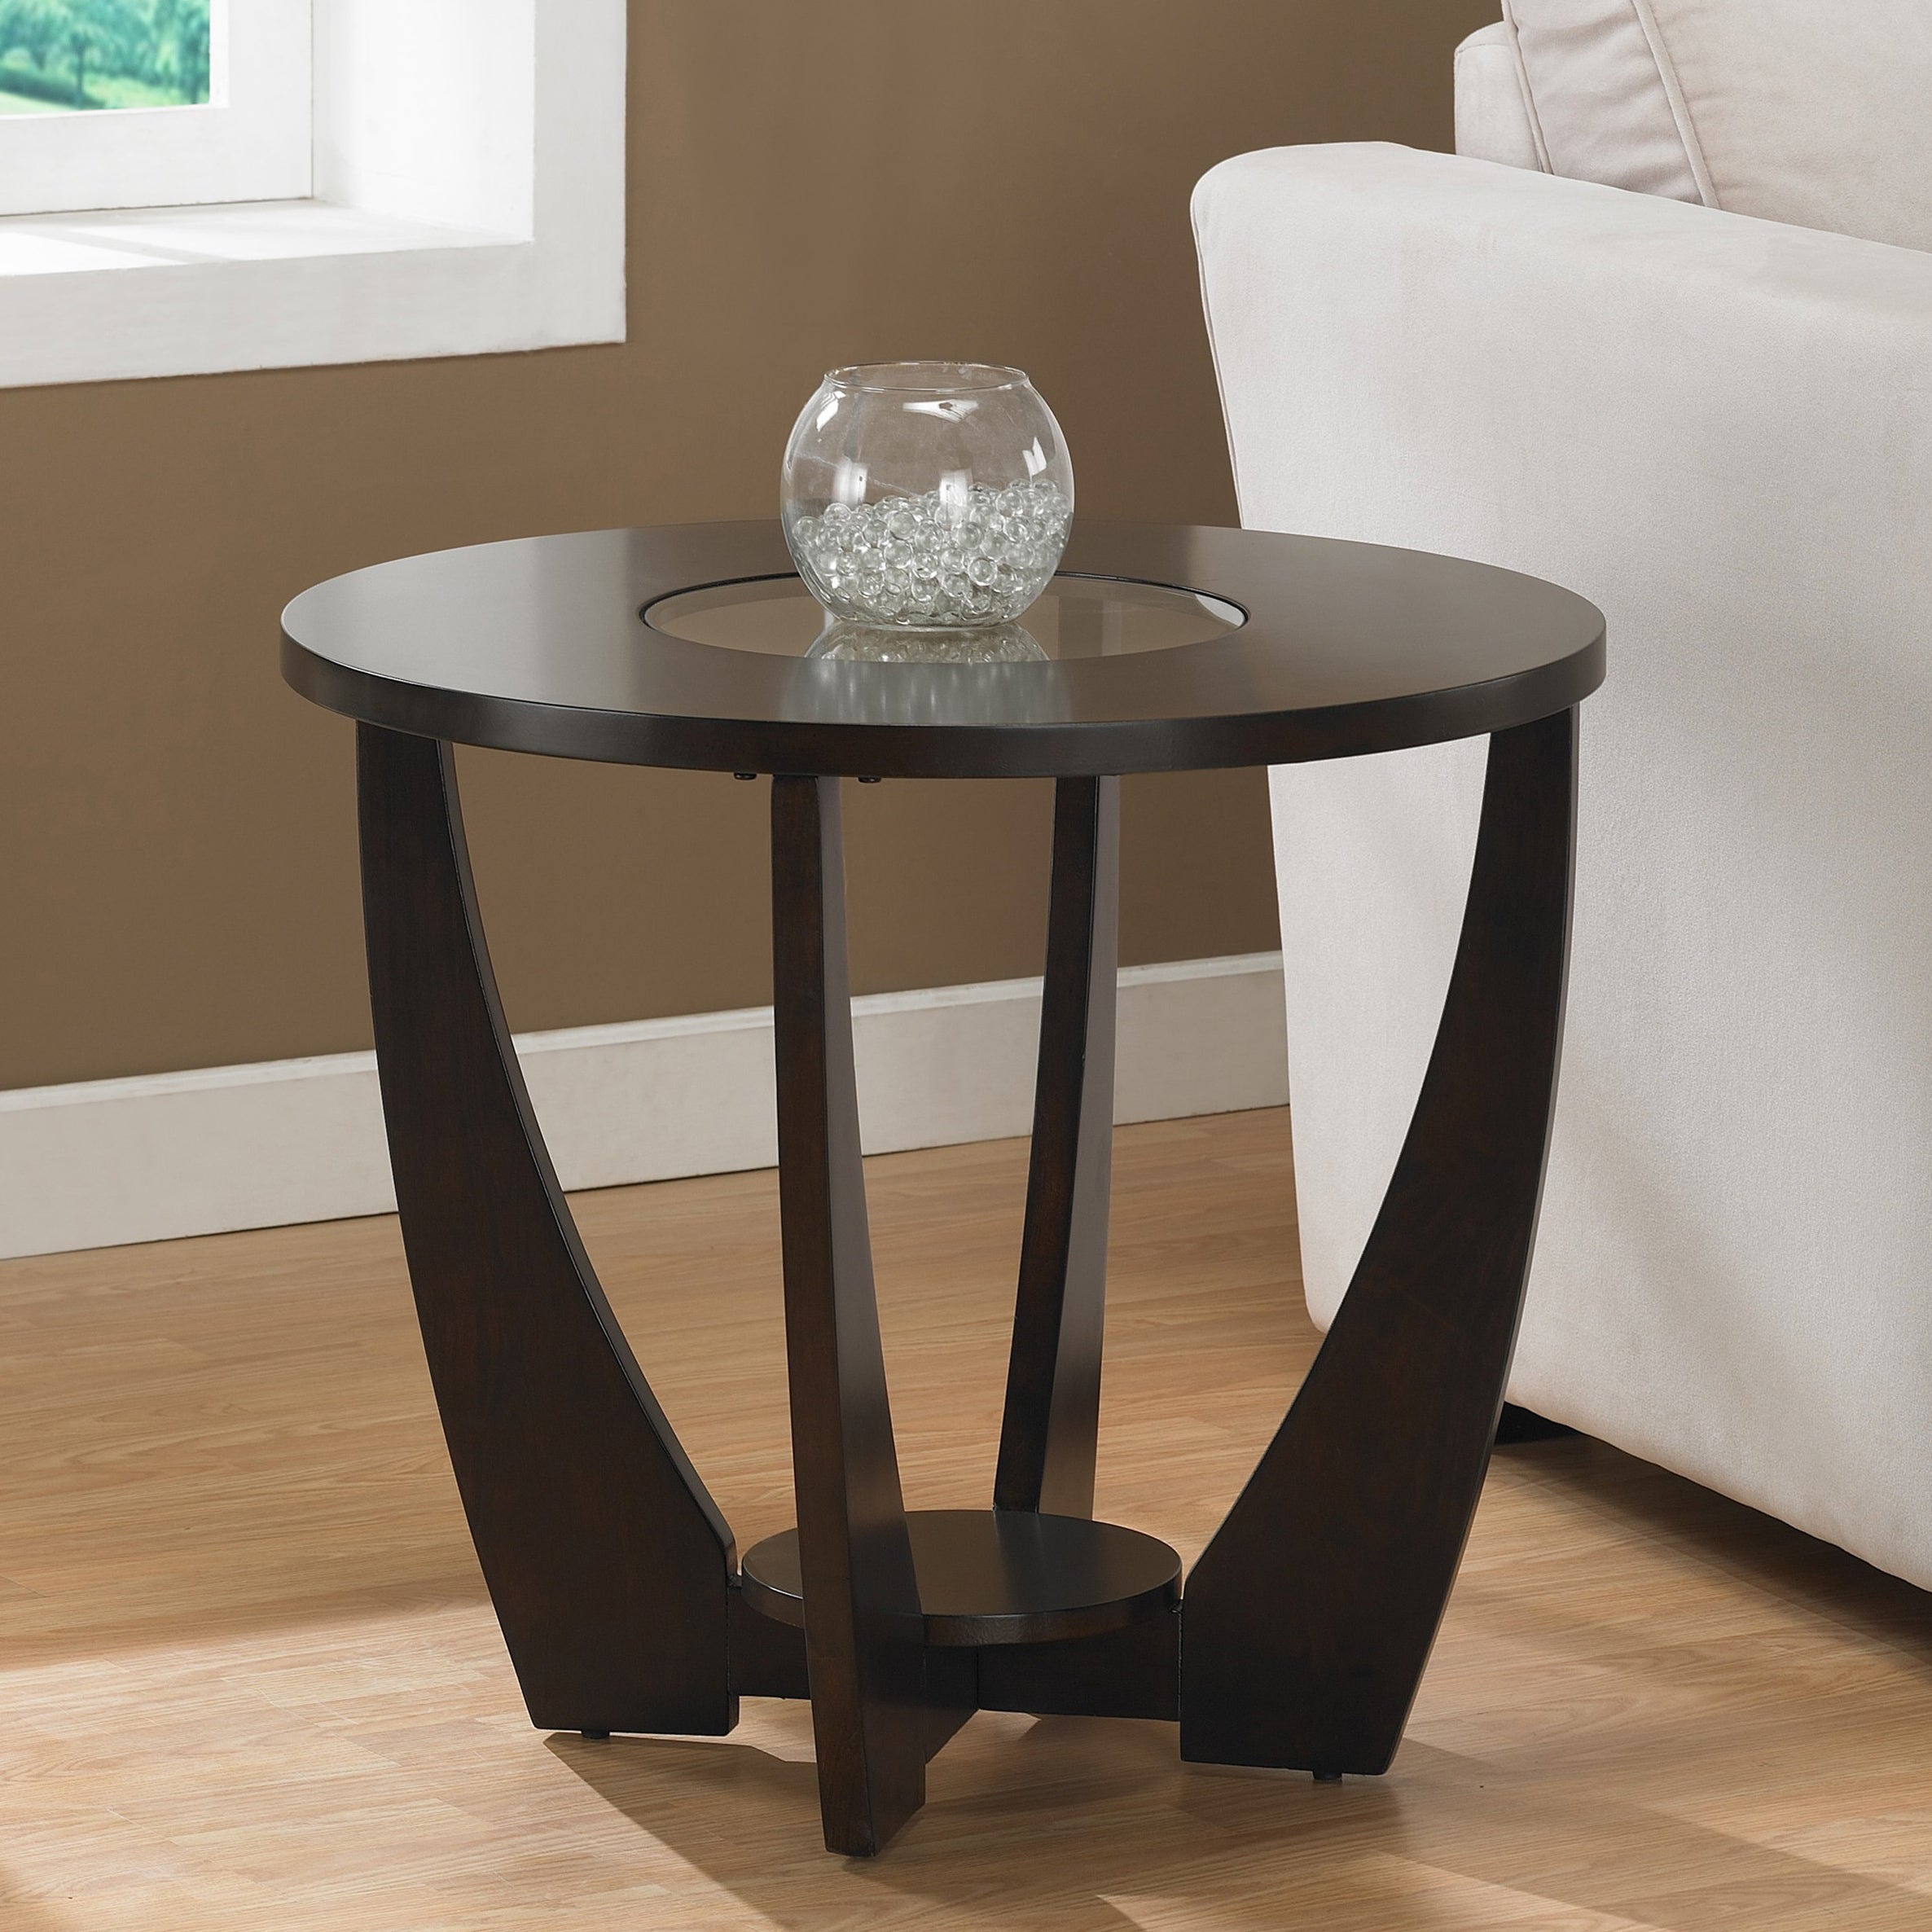 End Tables Living Room Display Shelf Modern Espresso Round